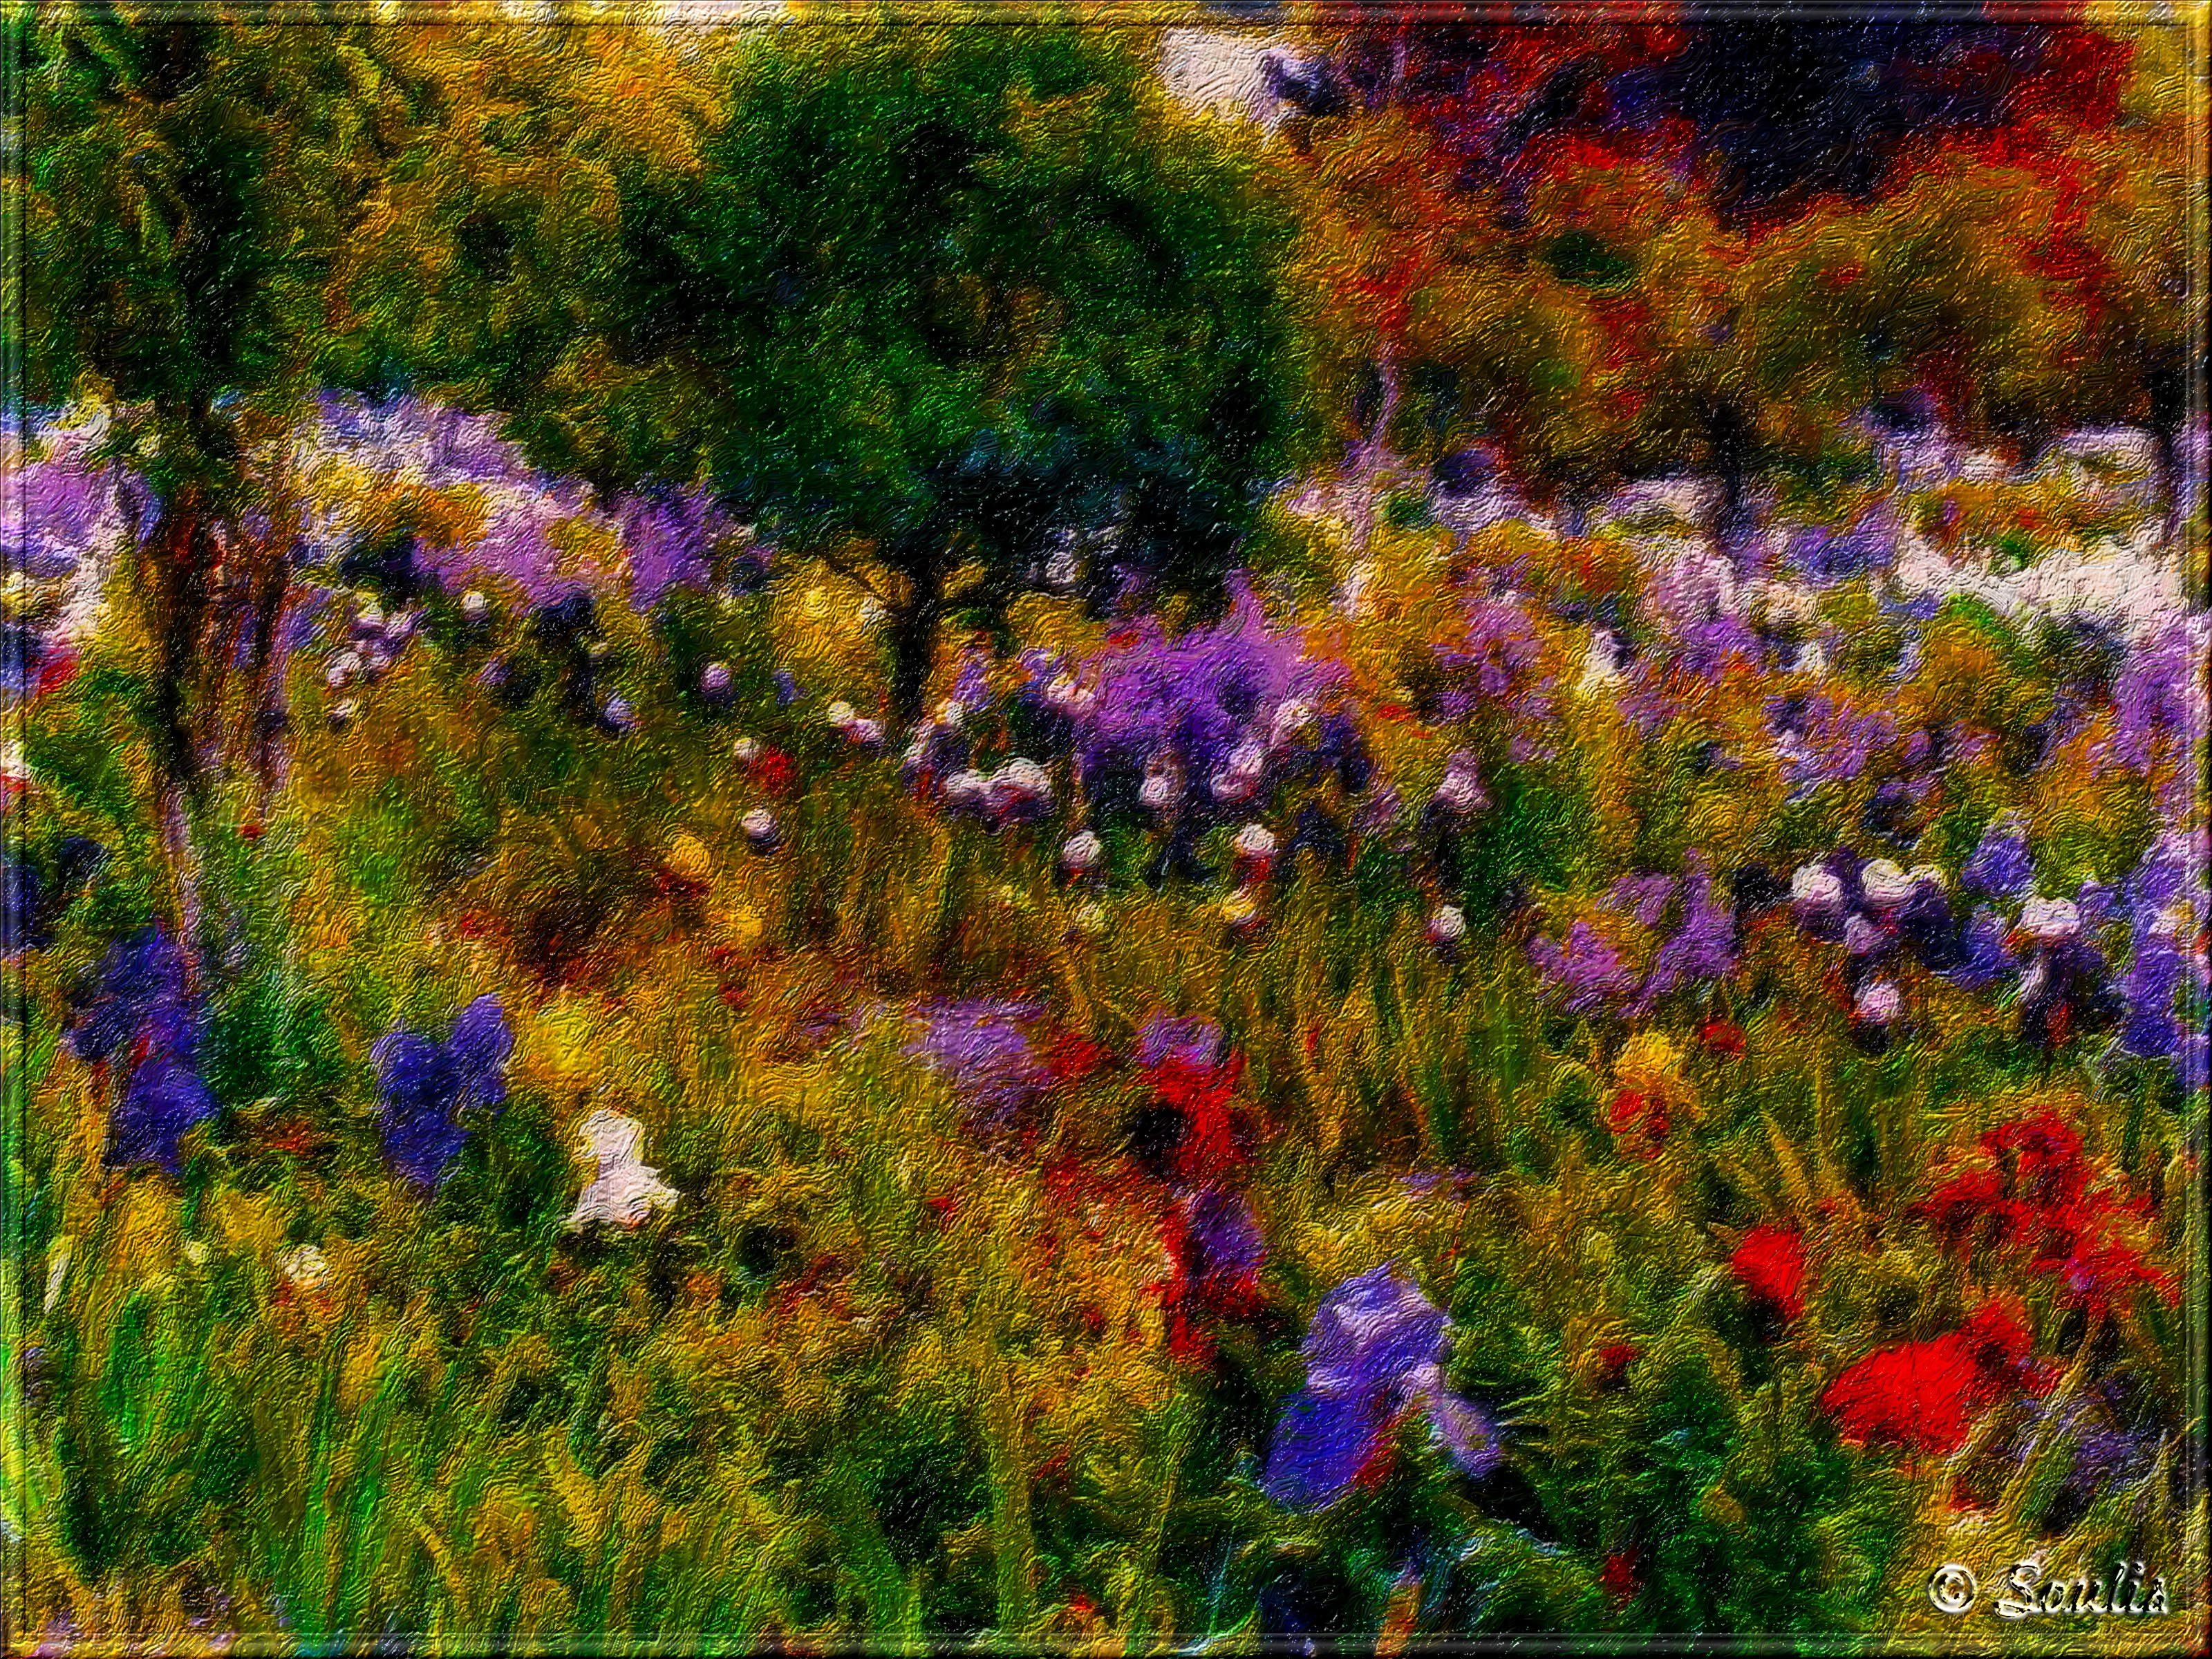 monet garden at giverny | Creative Commons Attribution-Noncommercial ...